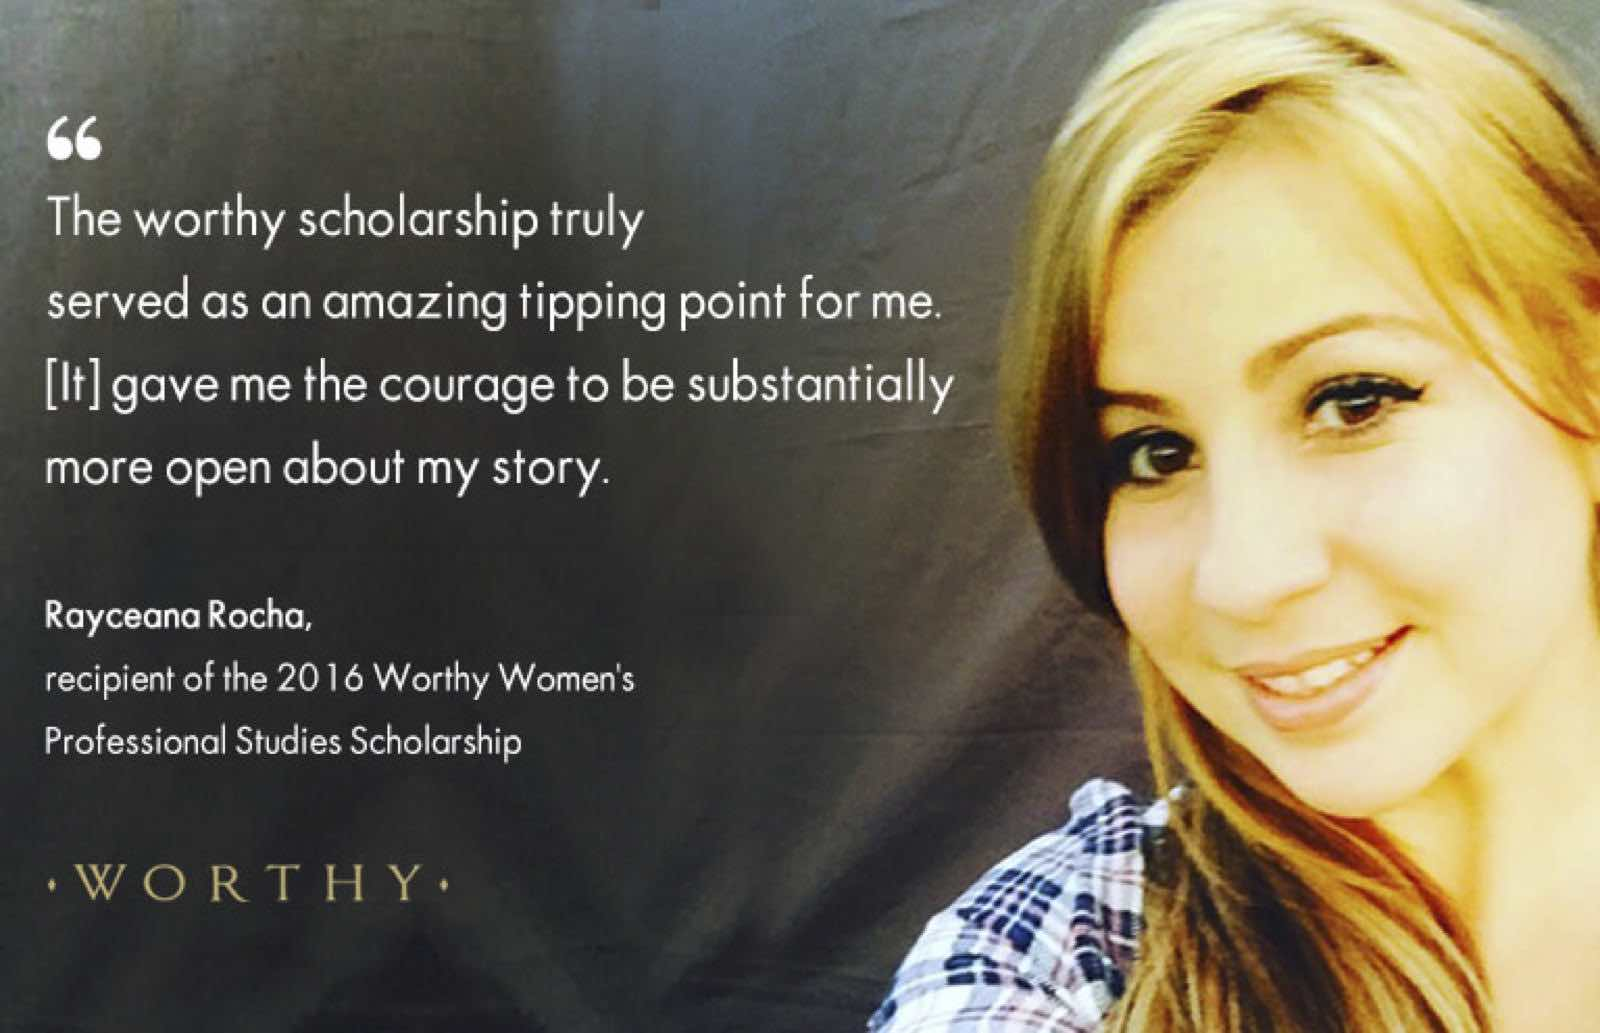 Believing in women. Making their dreams come true